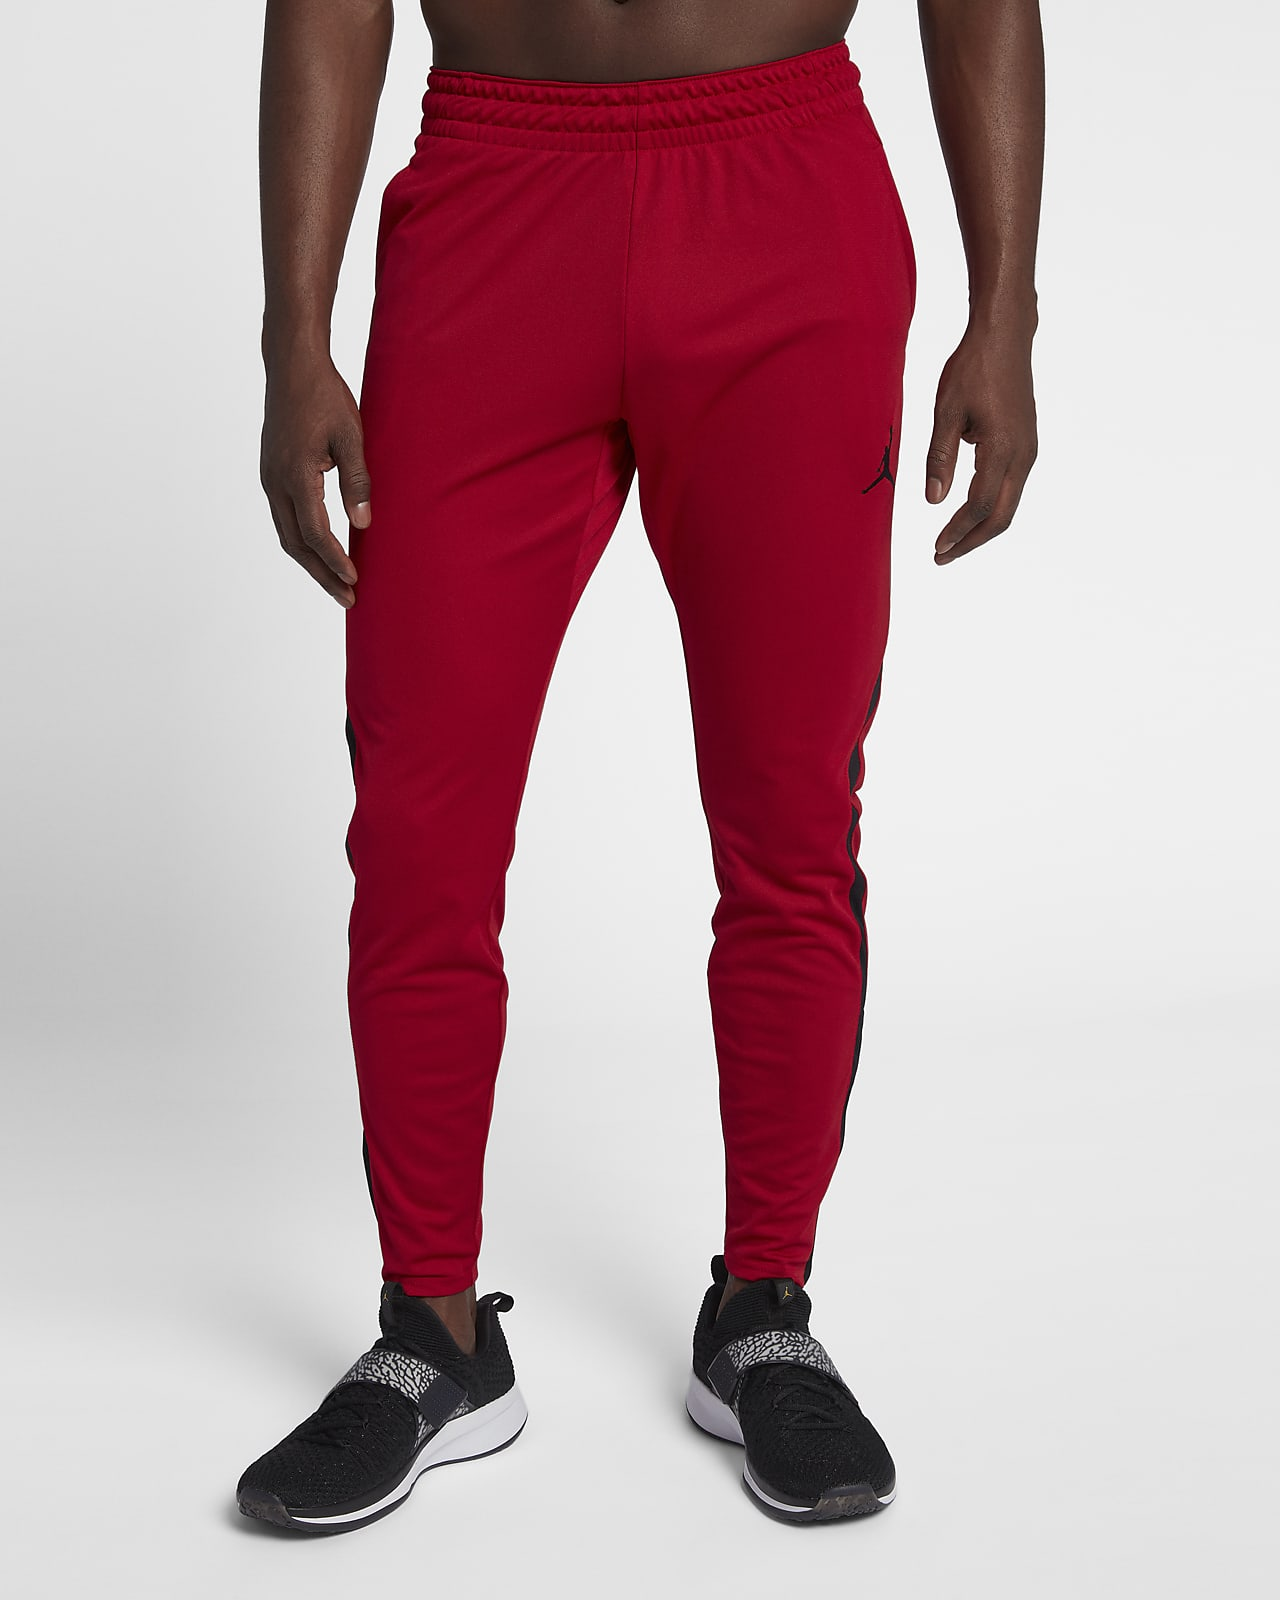 Jordan 23 Alpha Dri-FIT Men's Pants